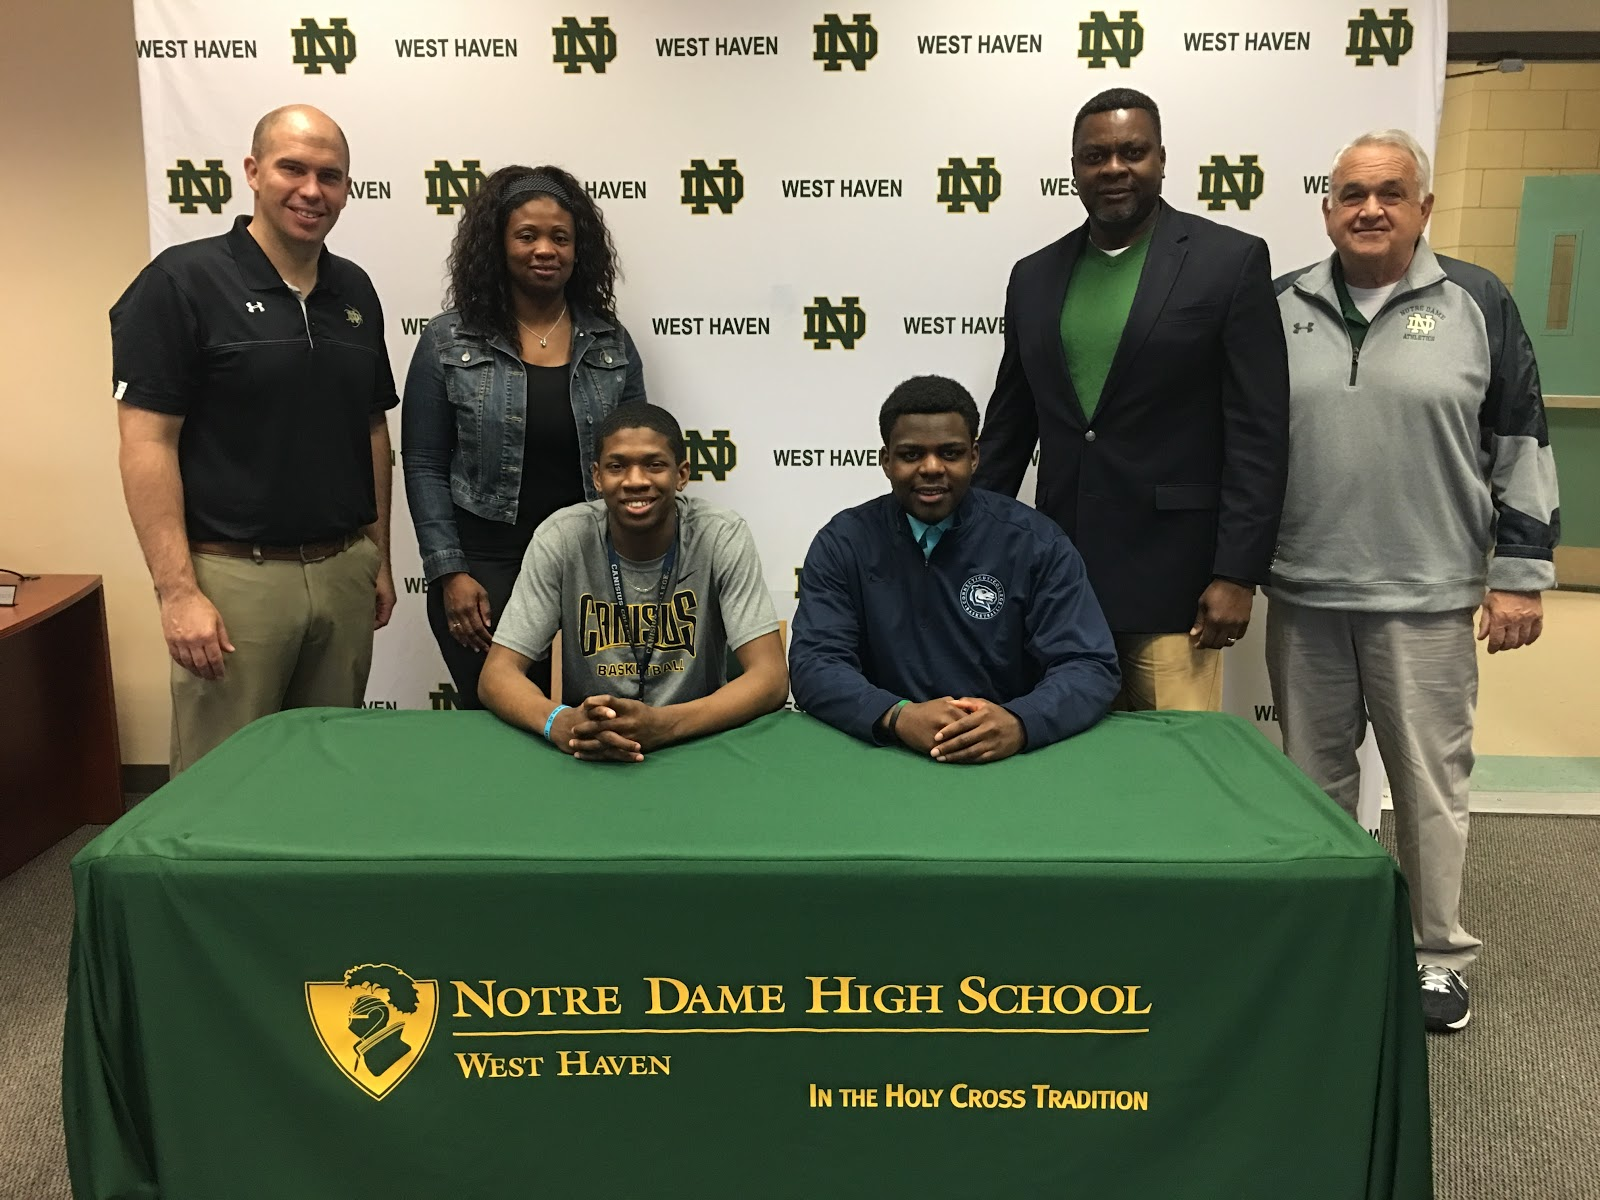 ND & CBA alums Jalanni White and Chuck Dikko on signing day